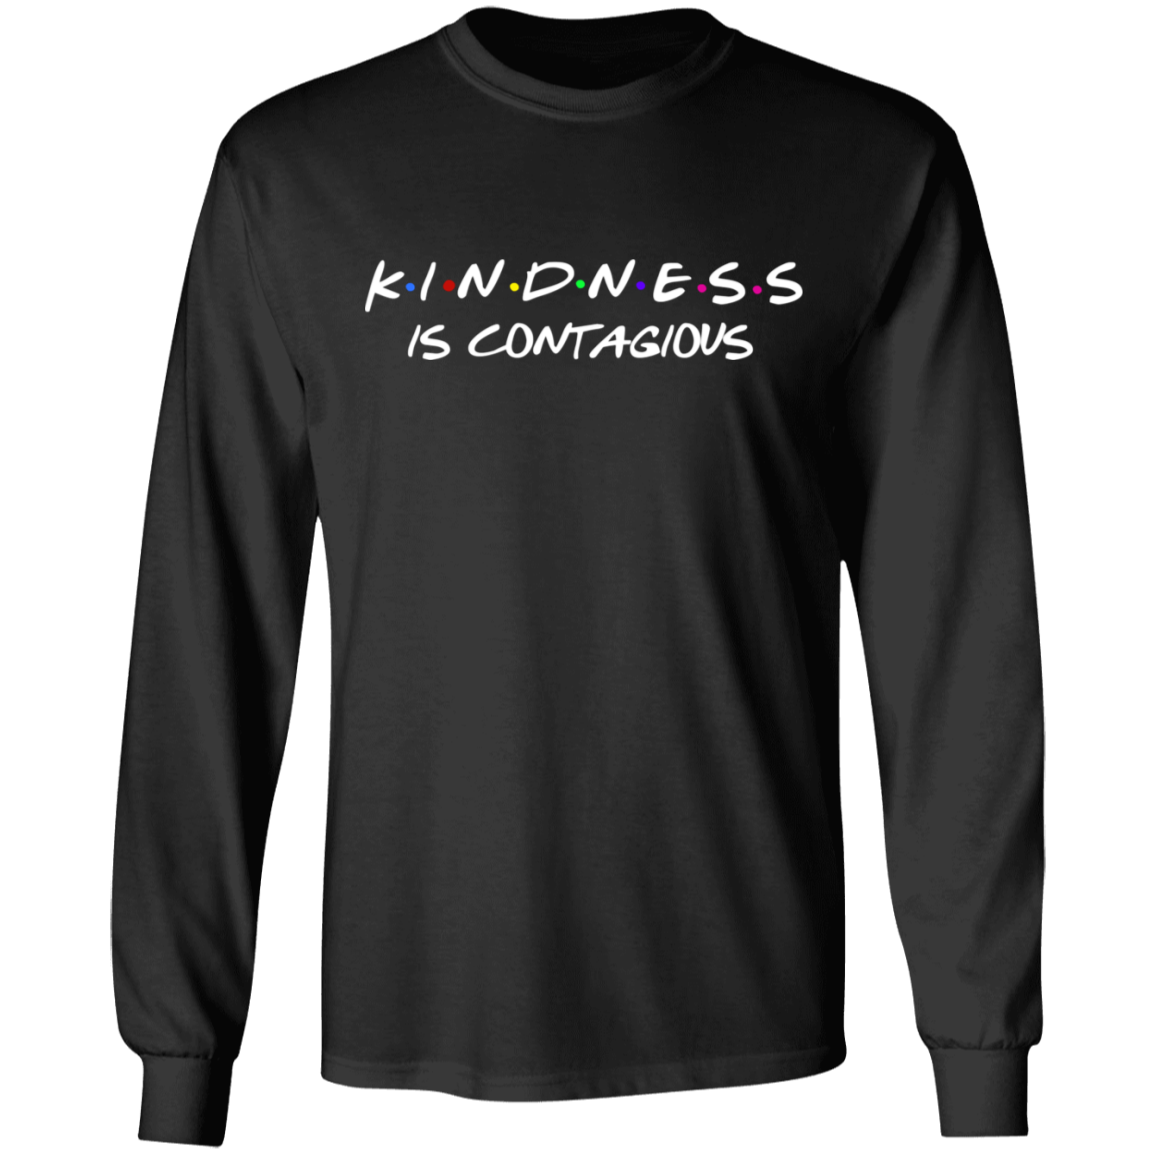 Kindness is contagious LS .  T-Shirt